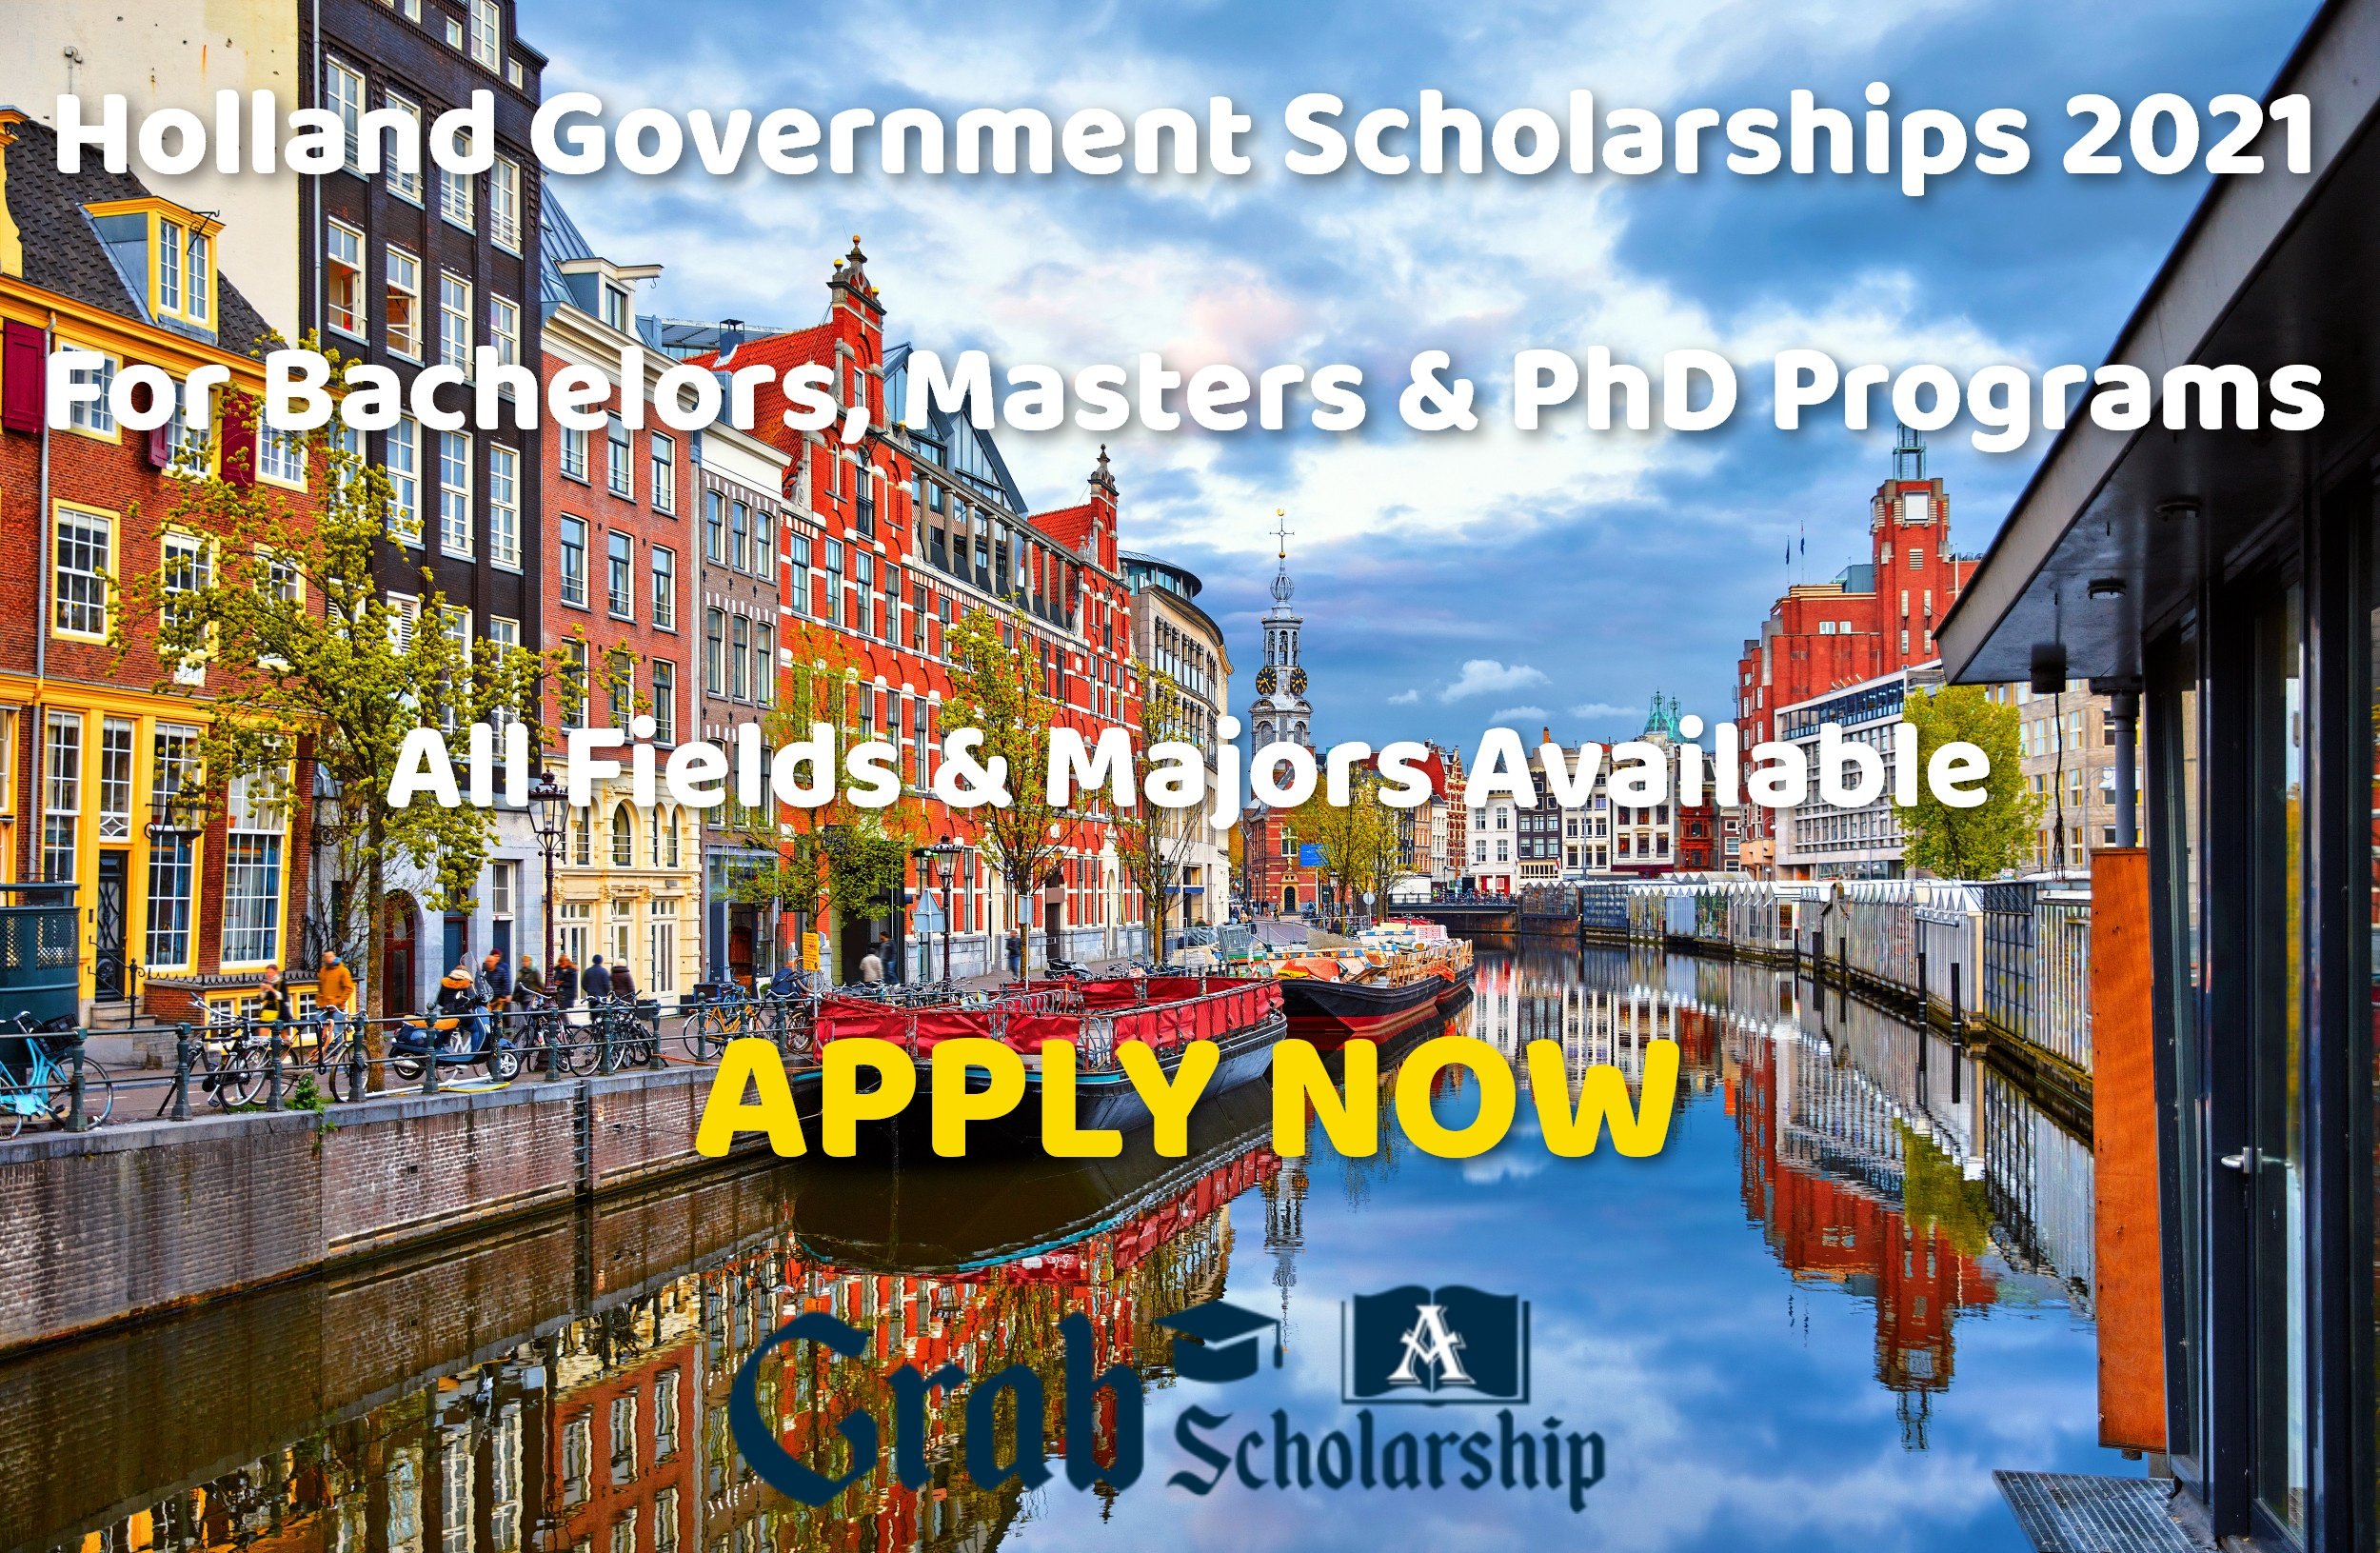 Holland Government Scholarships 2021